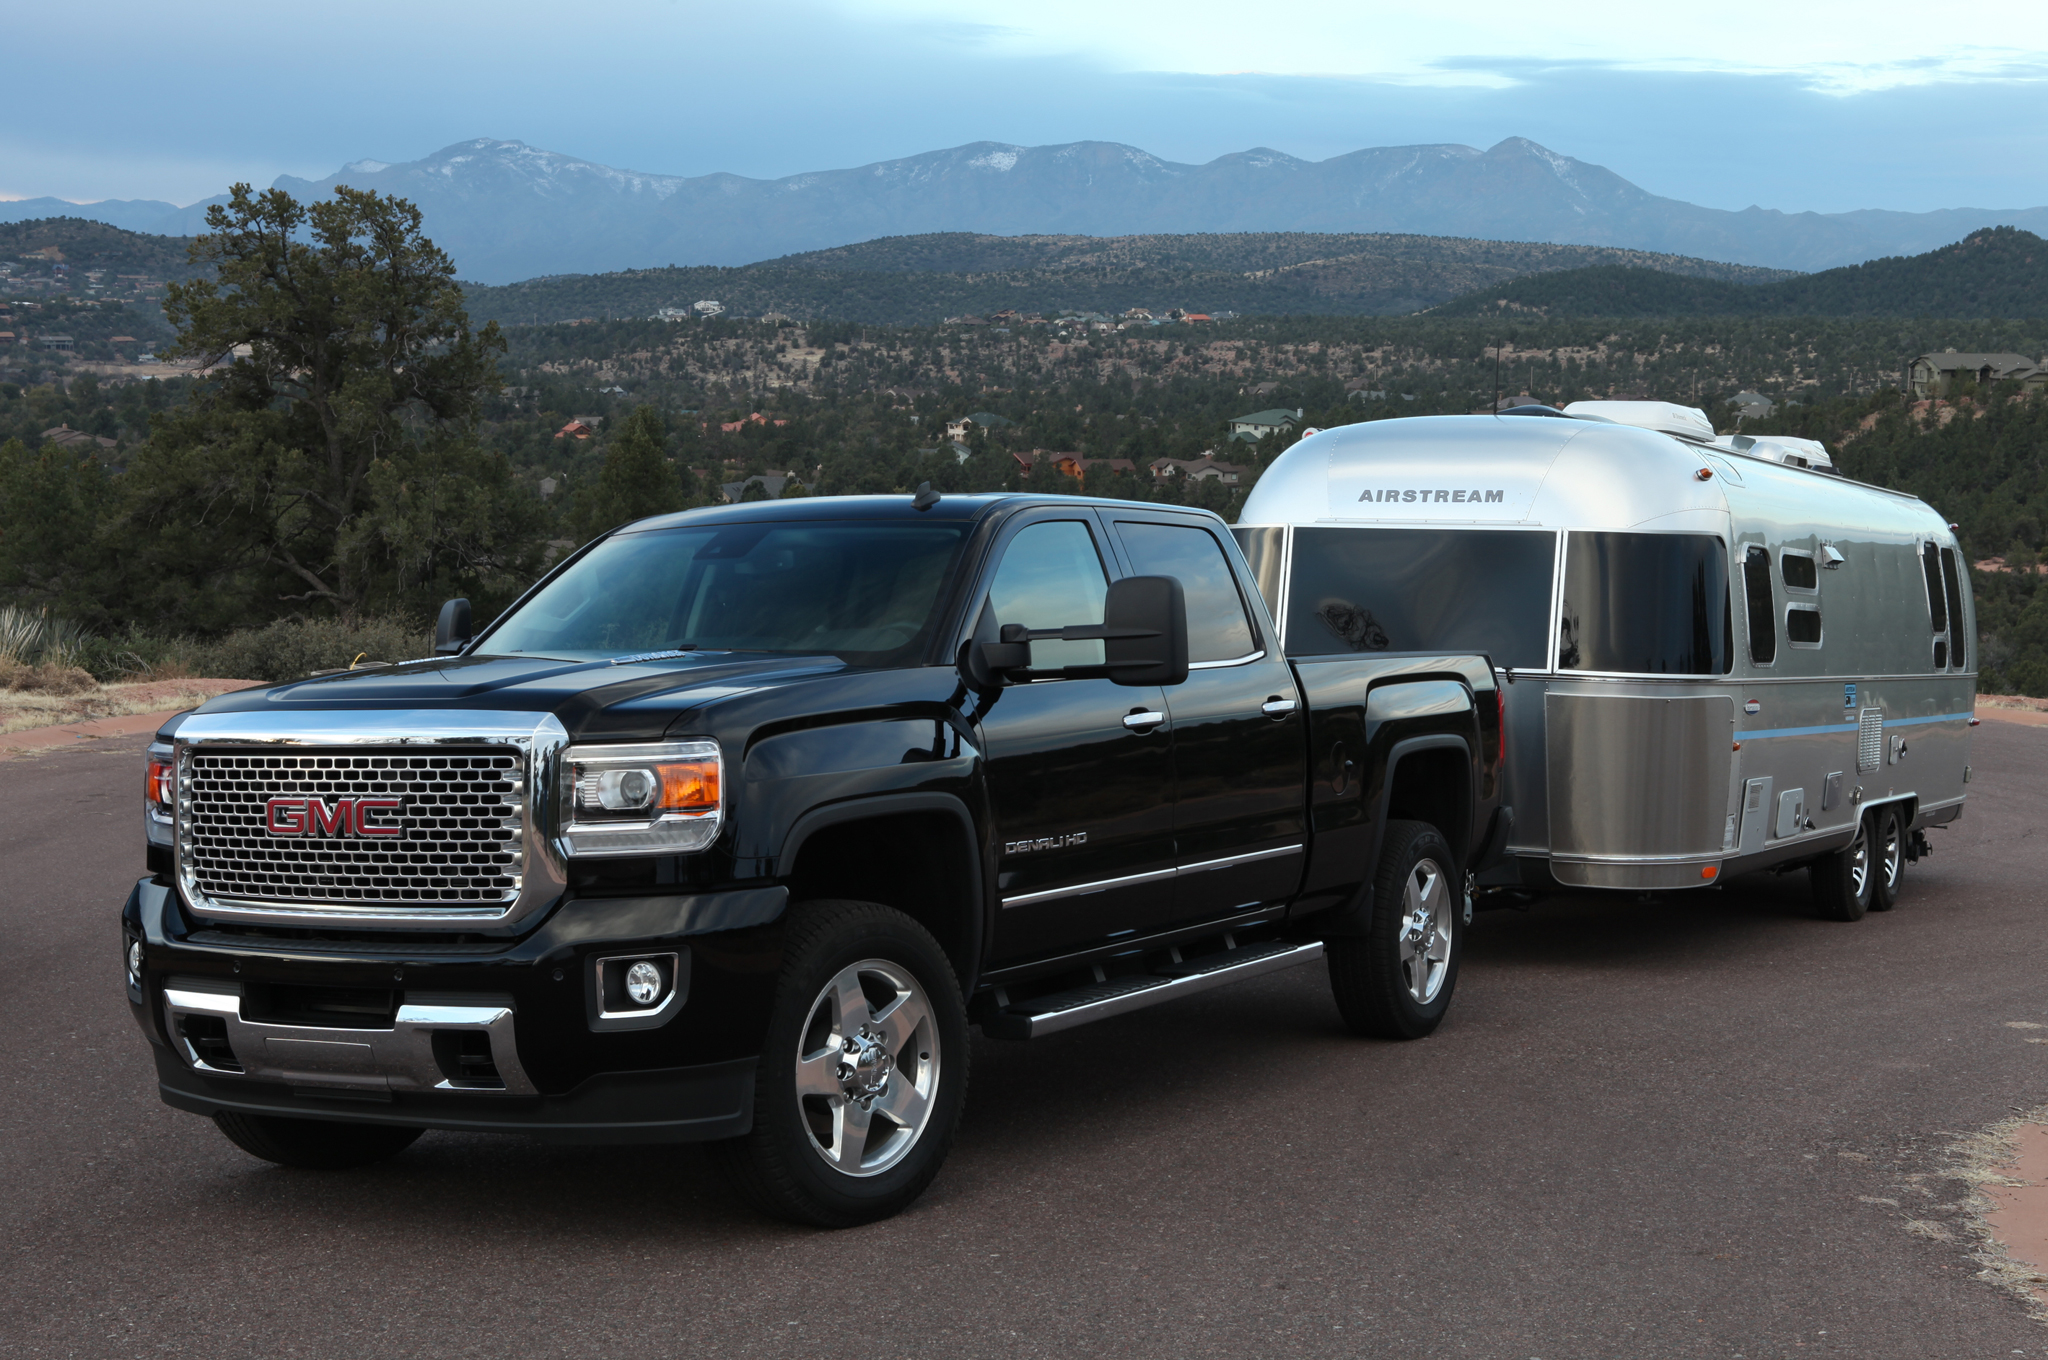 us sierra three trucks vehicles dynamic gmc front en media states quarter pressroom united